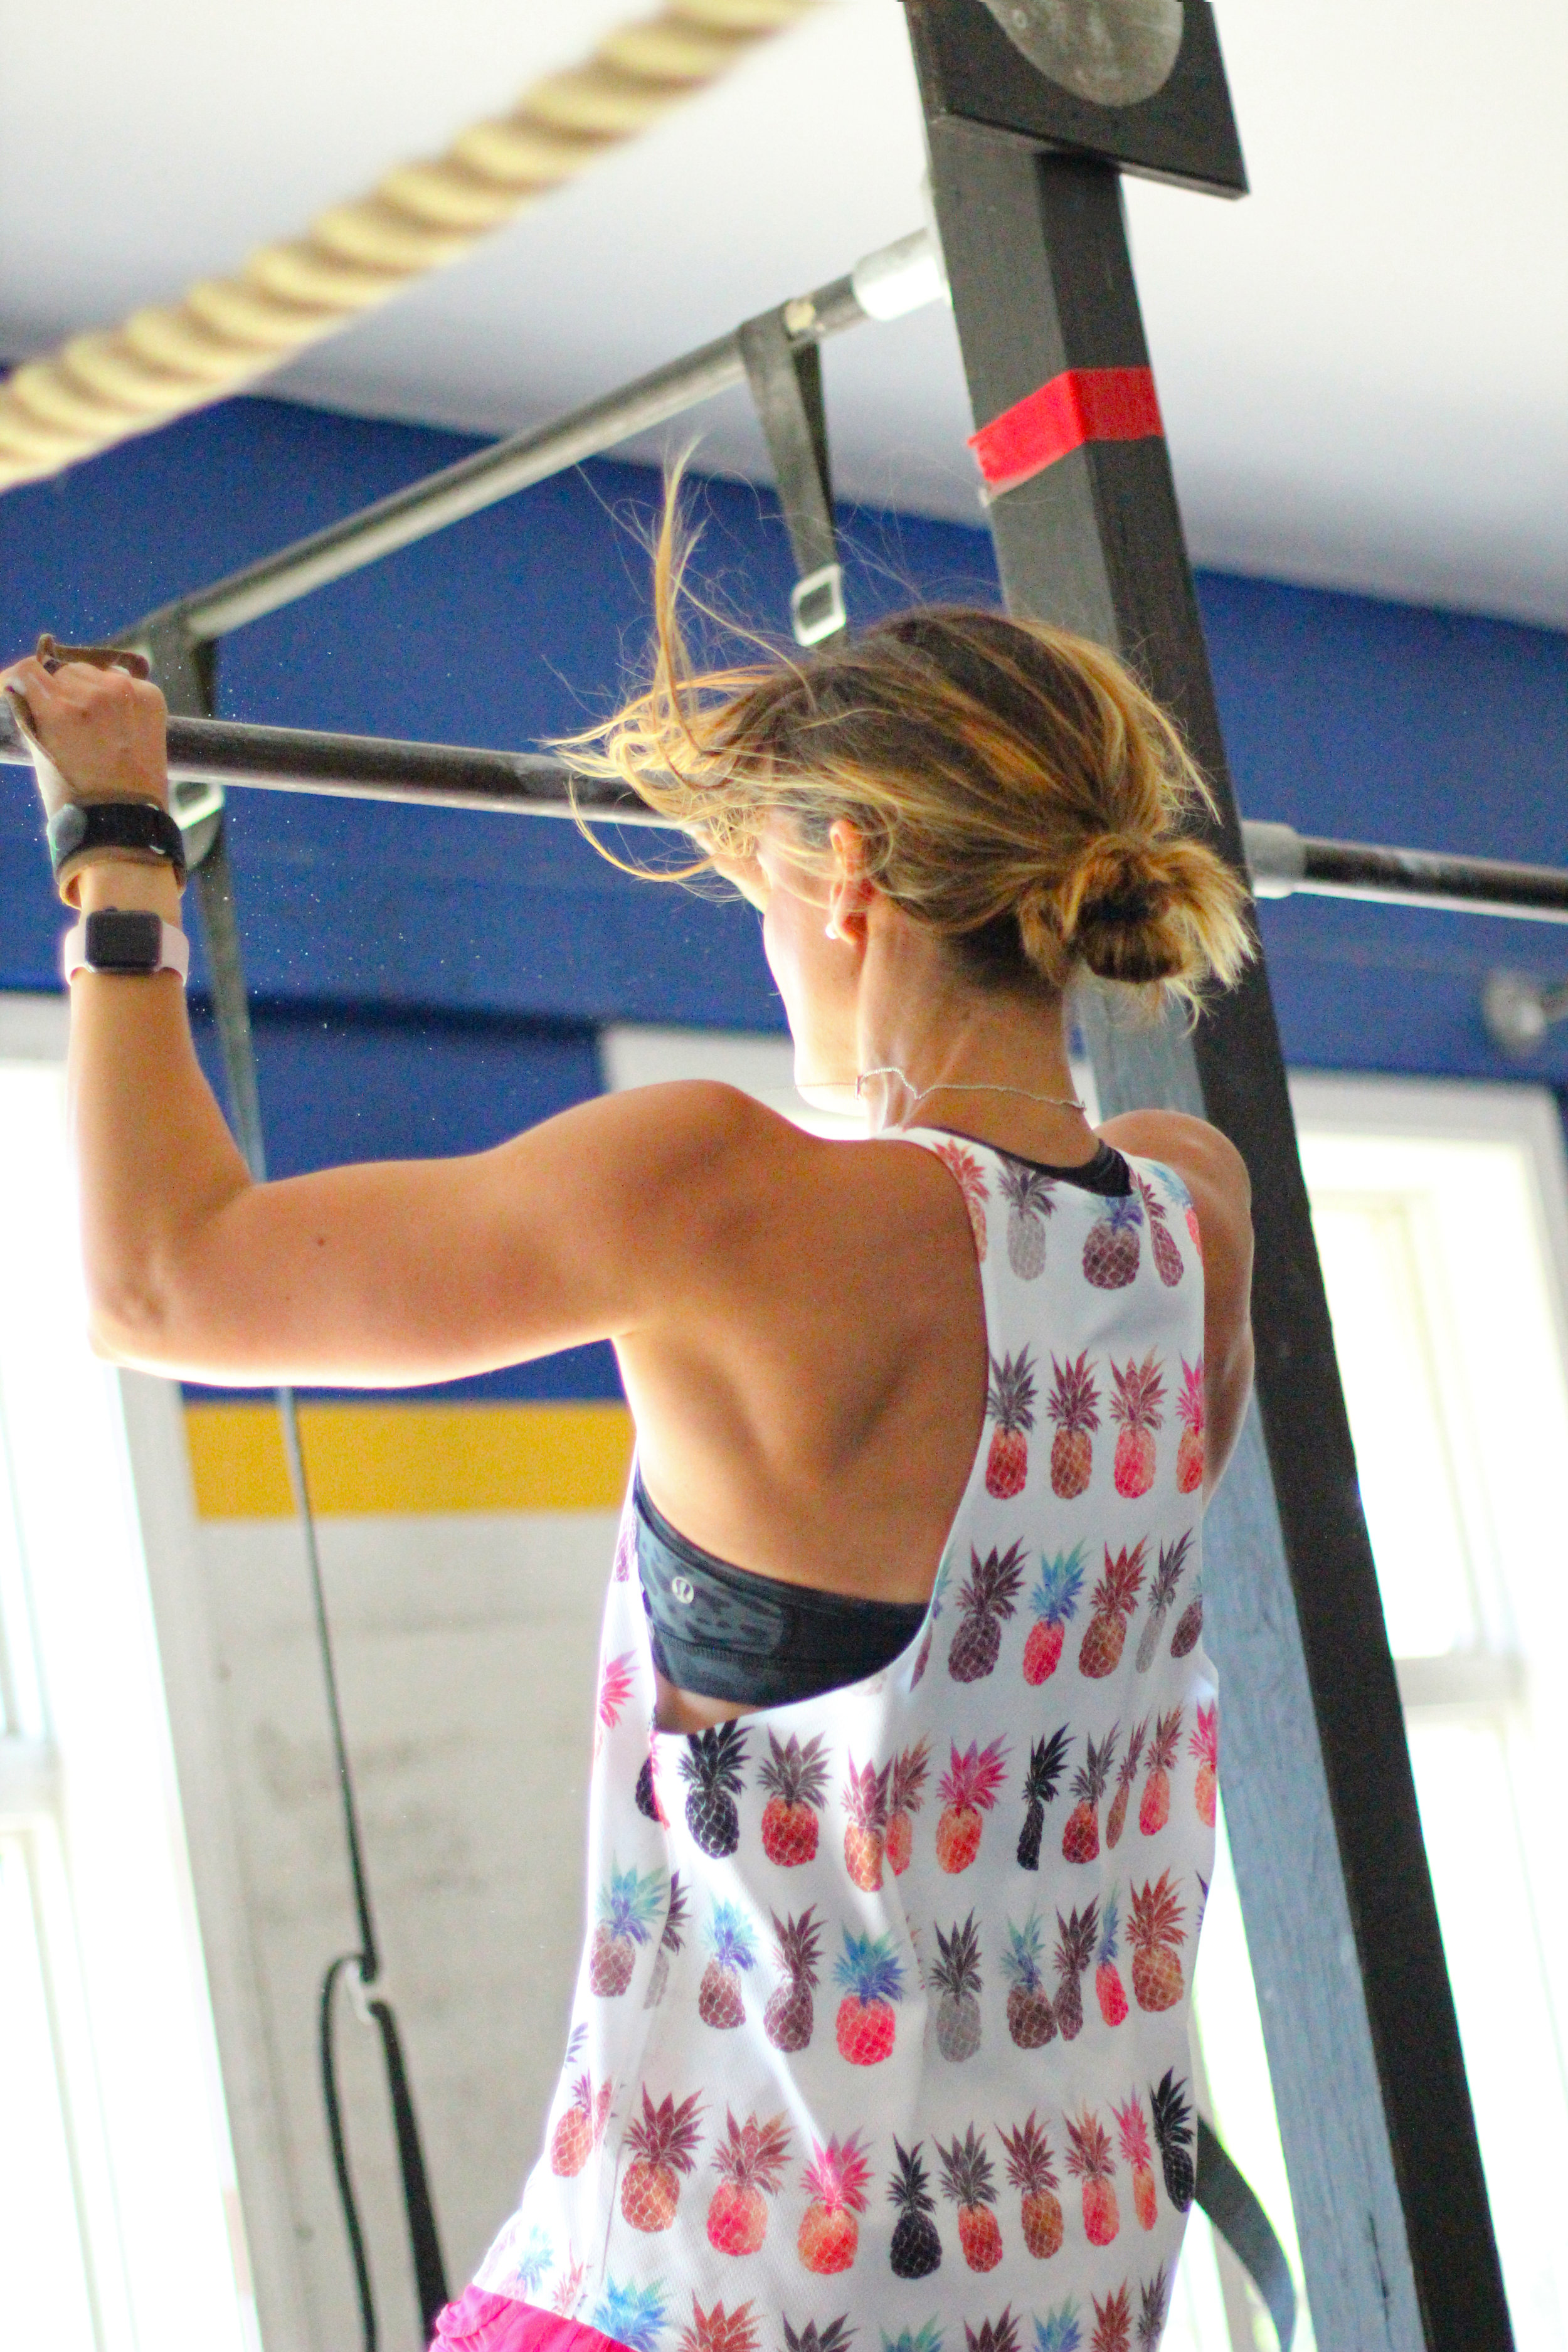 PVCF athlete, Lea Bullock, gets after some pull-ups in the sunshine!